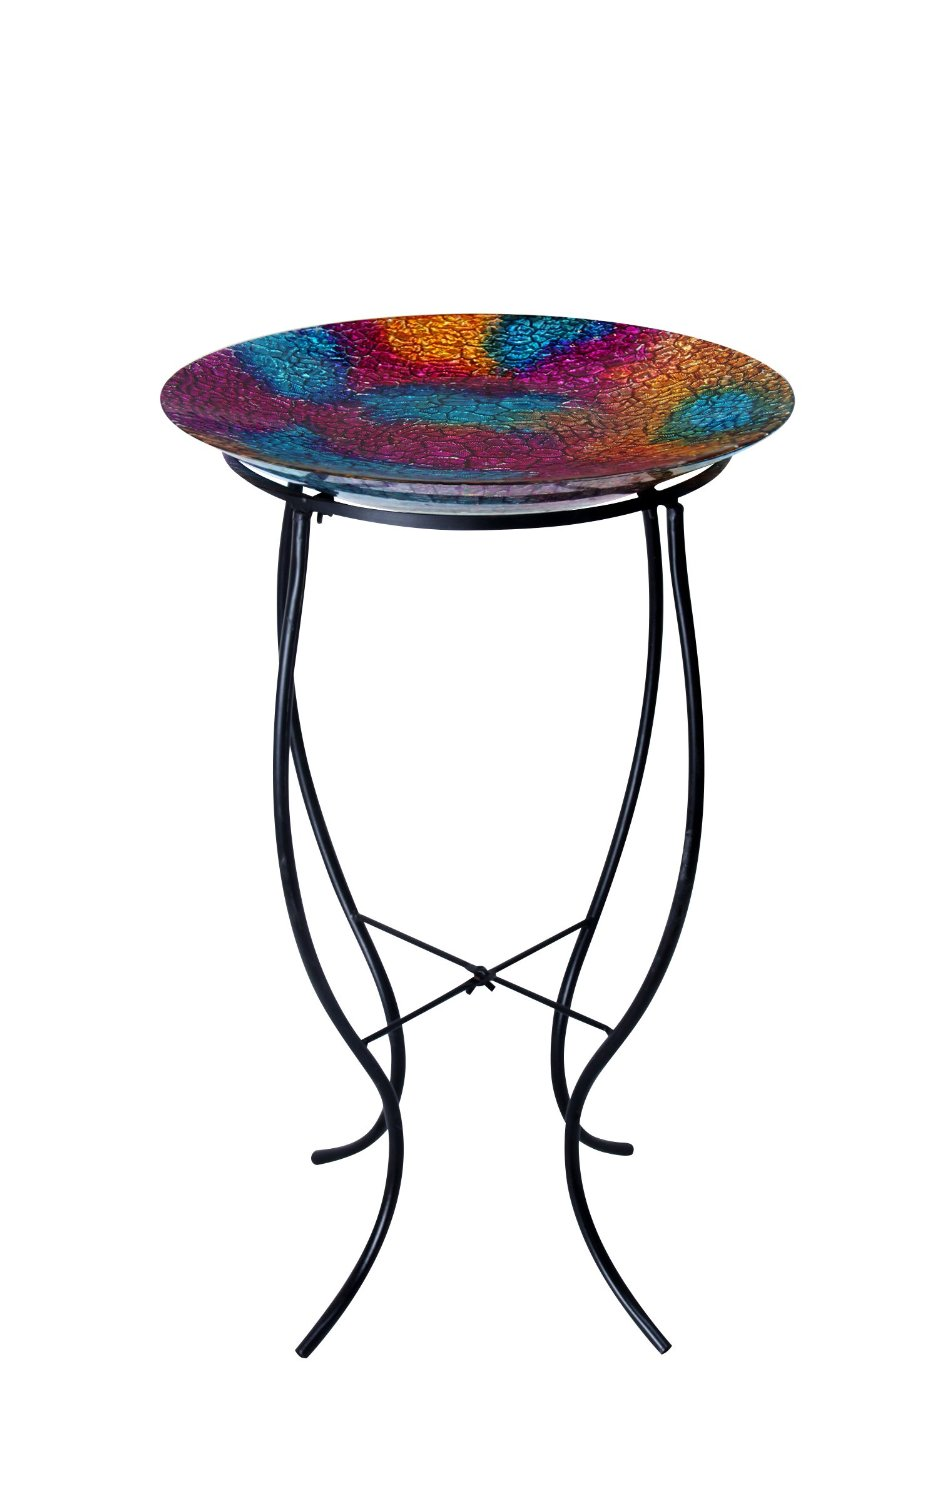 16 inch mosaic multi colored birdbath with metal stand